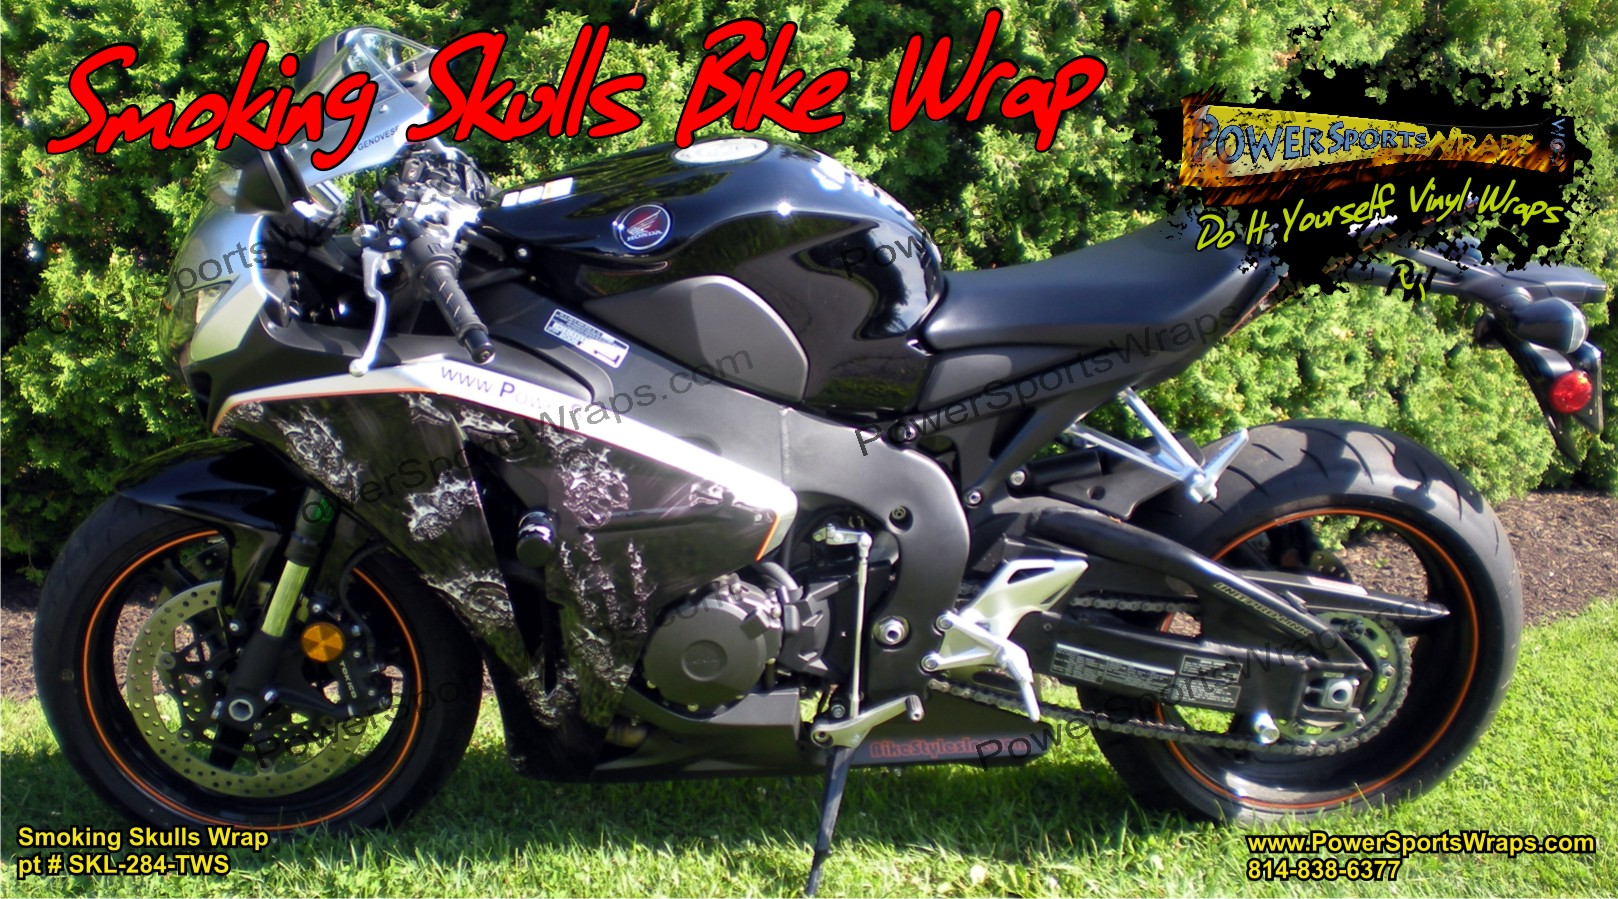 Honda CBR Wrap Archives Powersportswrapscom - Vinyl bike wrapmotorcycle wrap archives powersportswrapscom